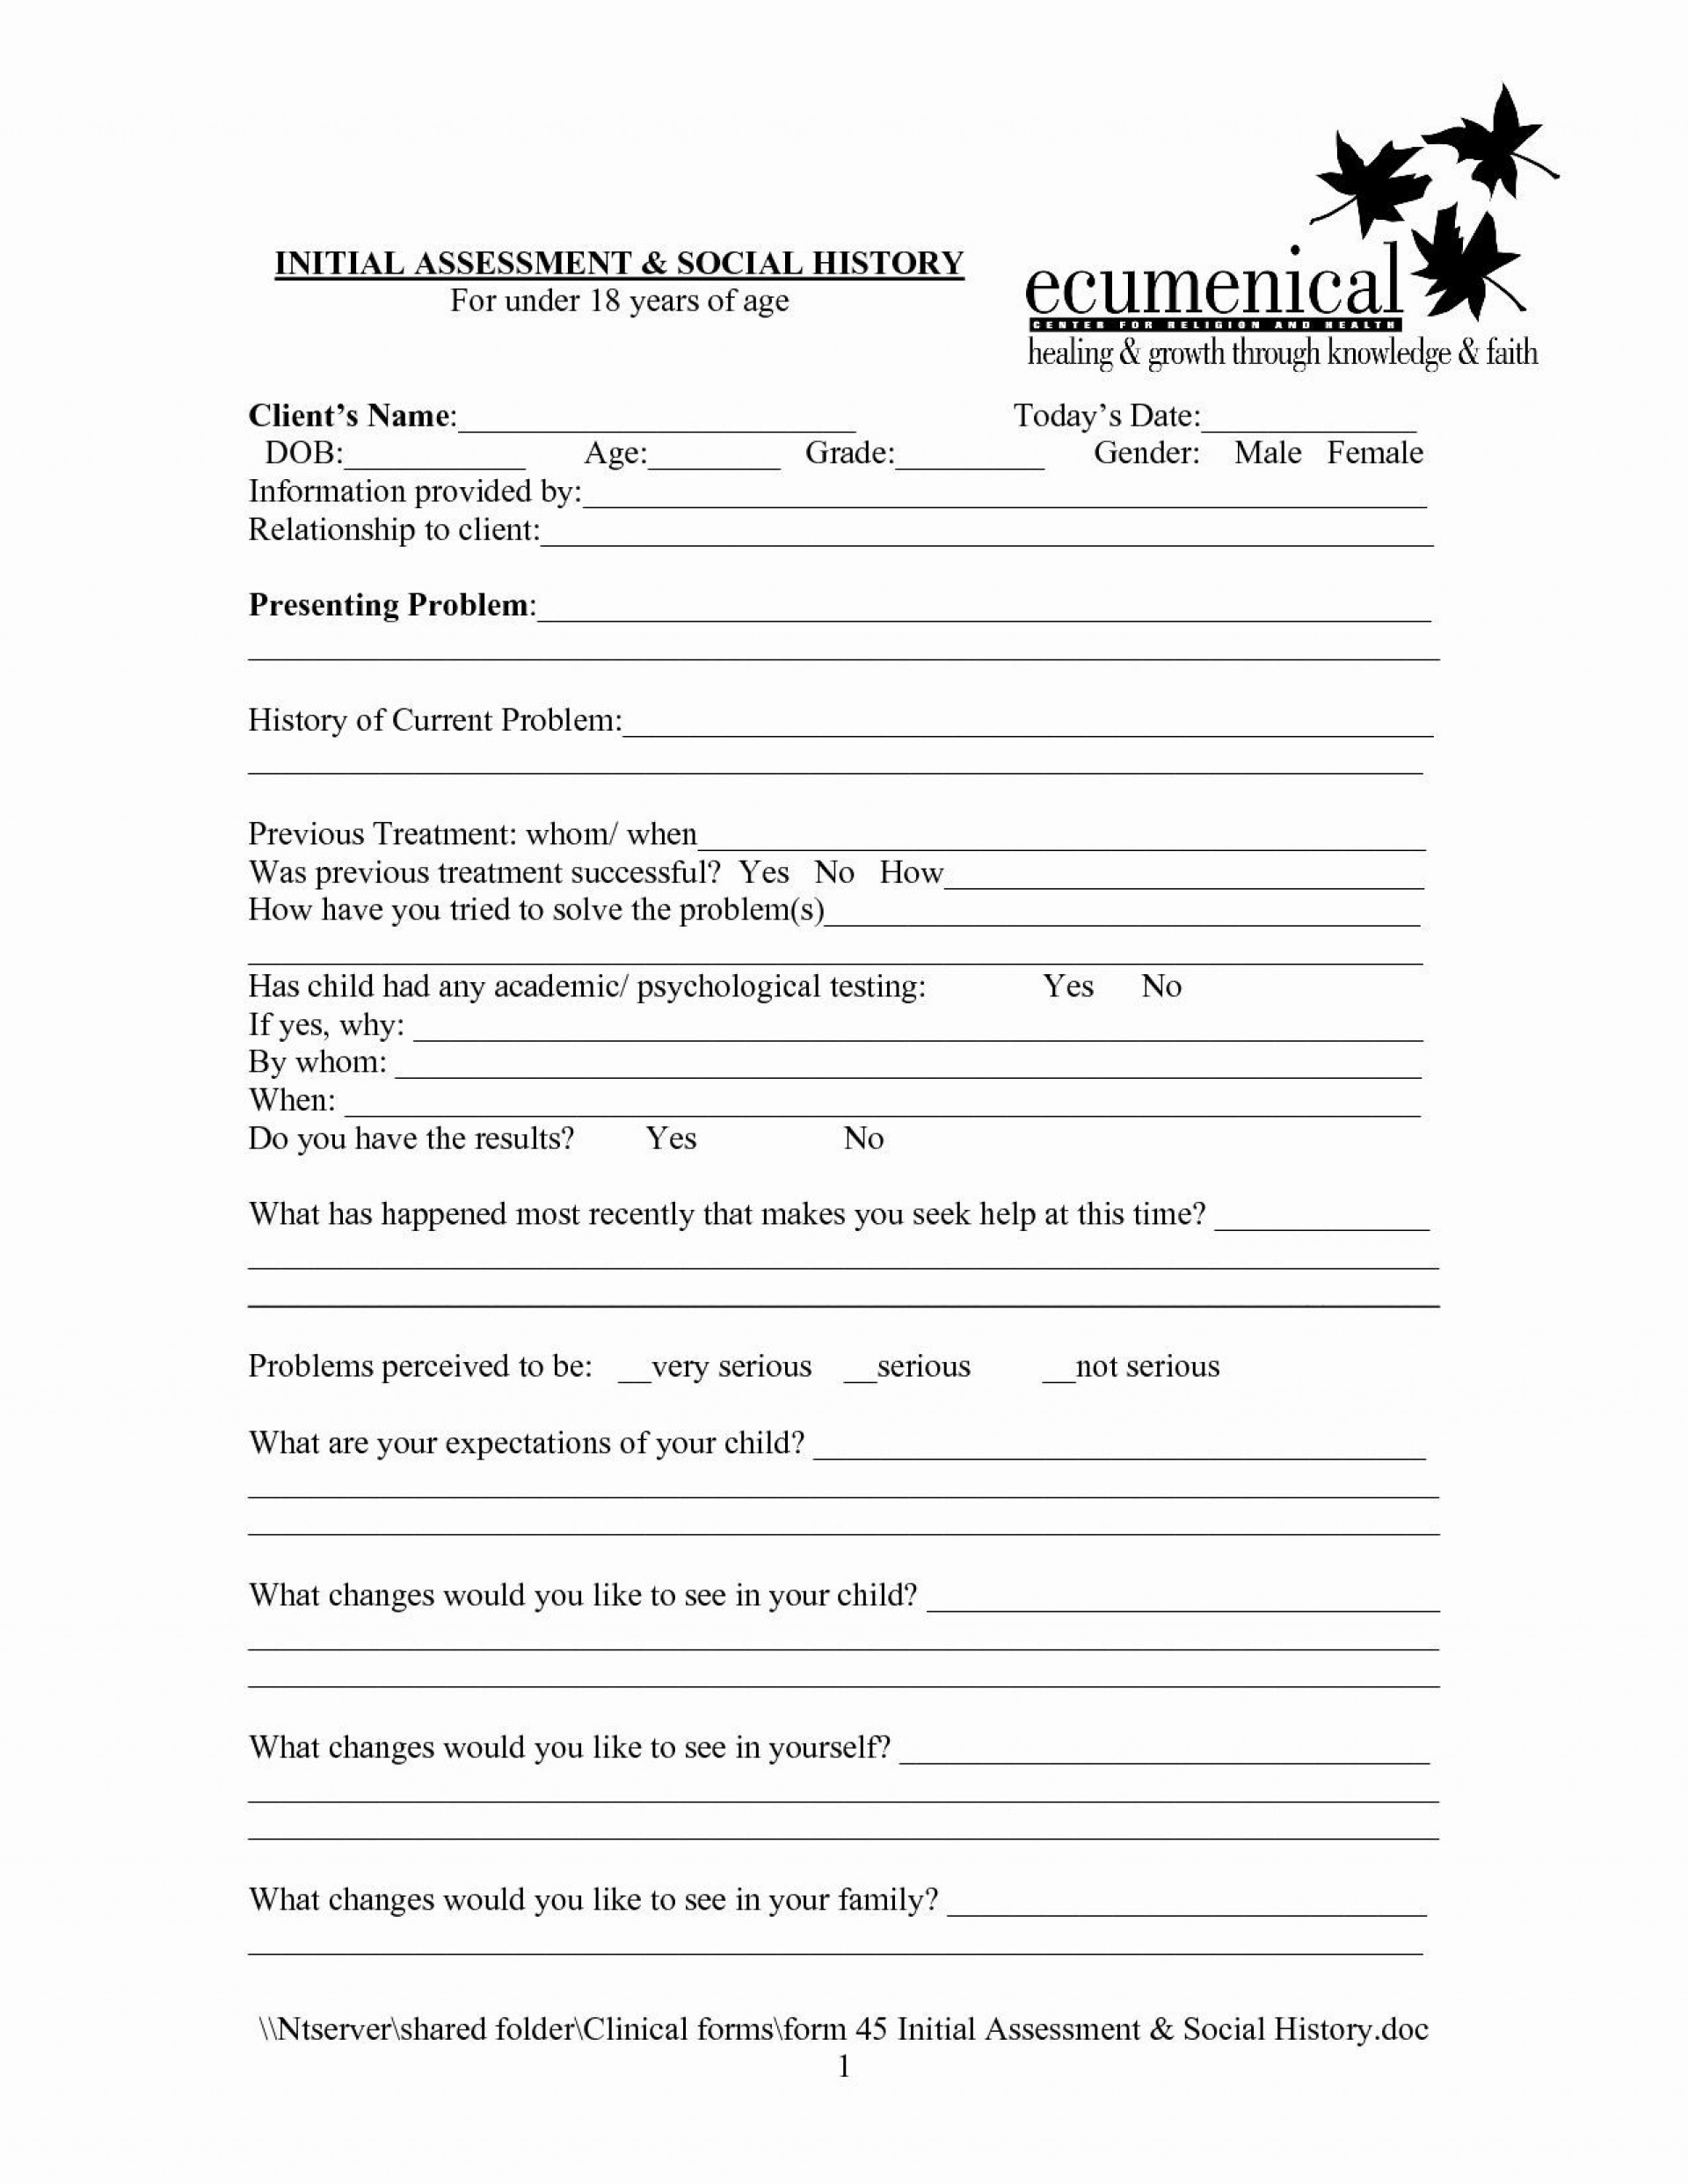 002 Amazing Counseling Intake Form Template Photo  Templates Therapy Massage Free1920